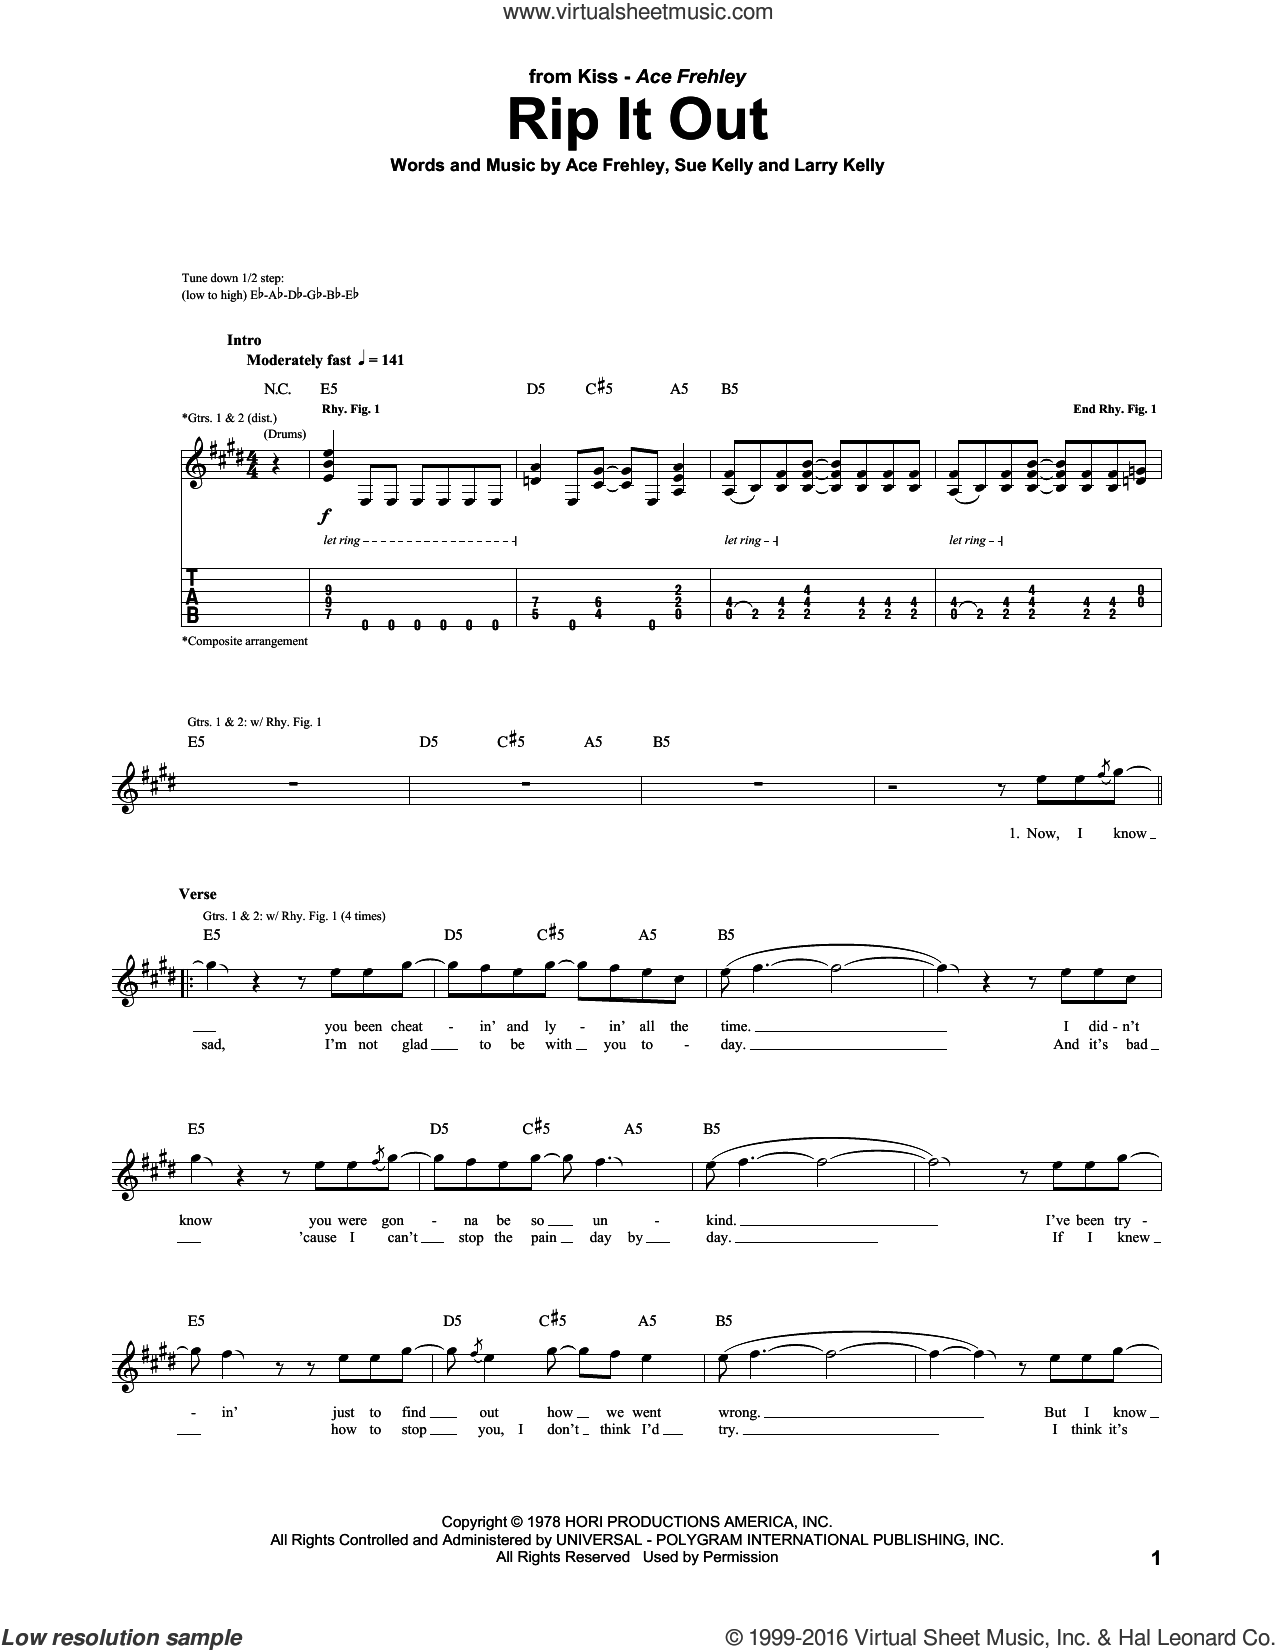 Rip It Out sheet music for guitar (tablature) by Sue Kelly, KISS and Ace Frehley. Score Image Preview.